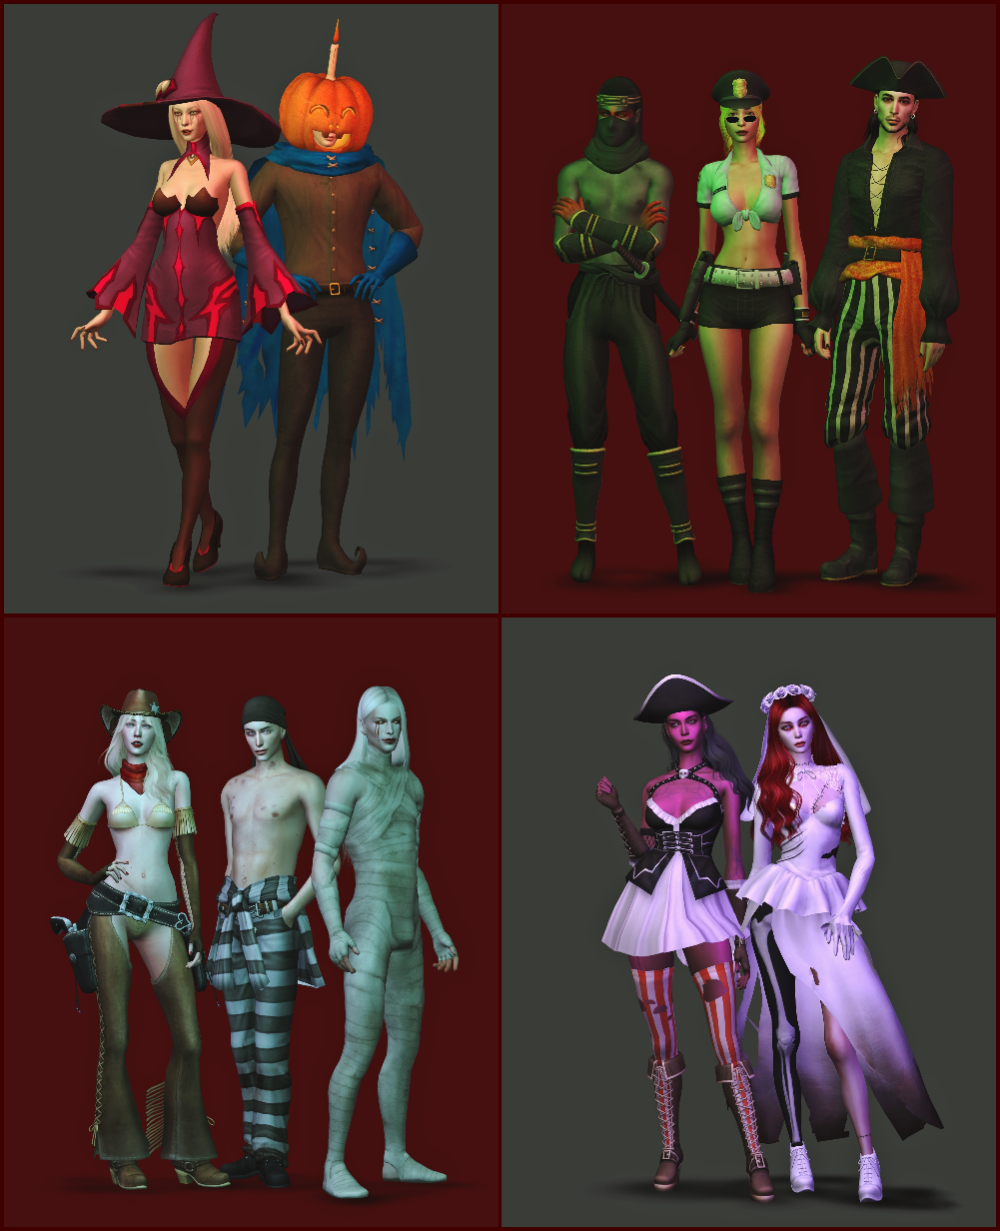 Halloween Sims 4 Cc 2020 Patreon in 2020 | Sims costume, Sims 4 anime, Sims 4 cc eyes